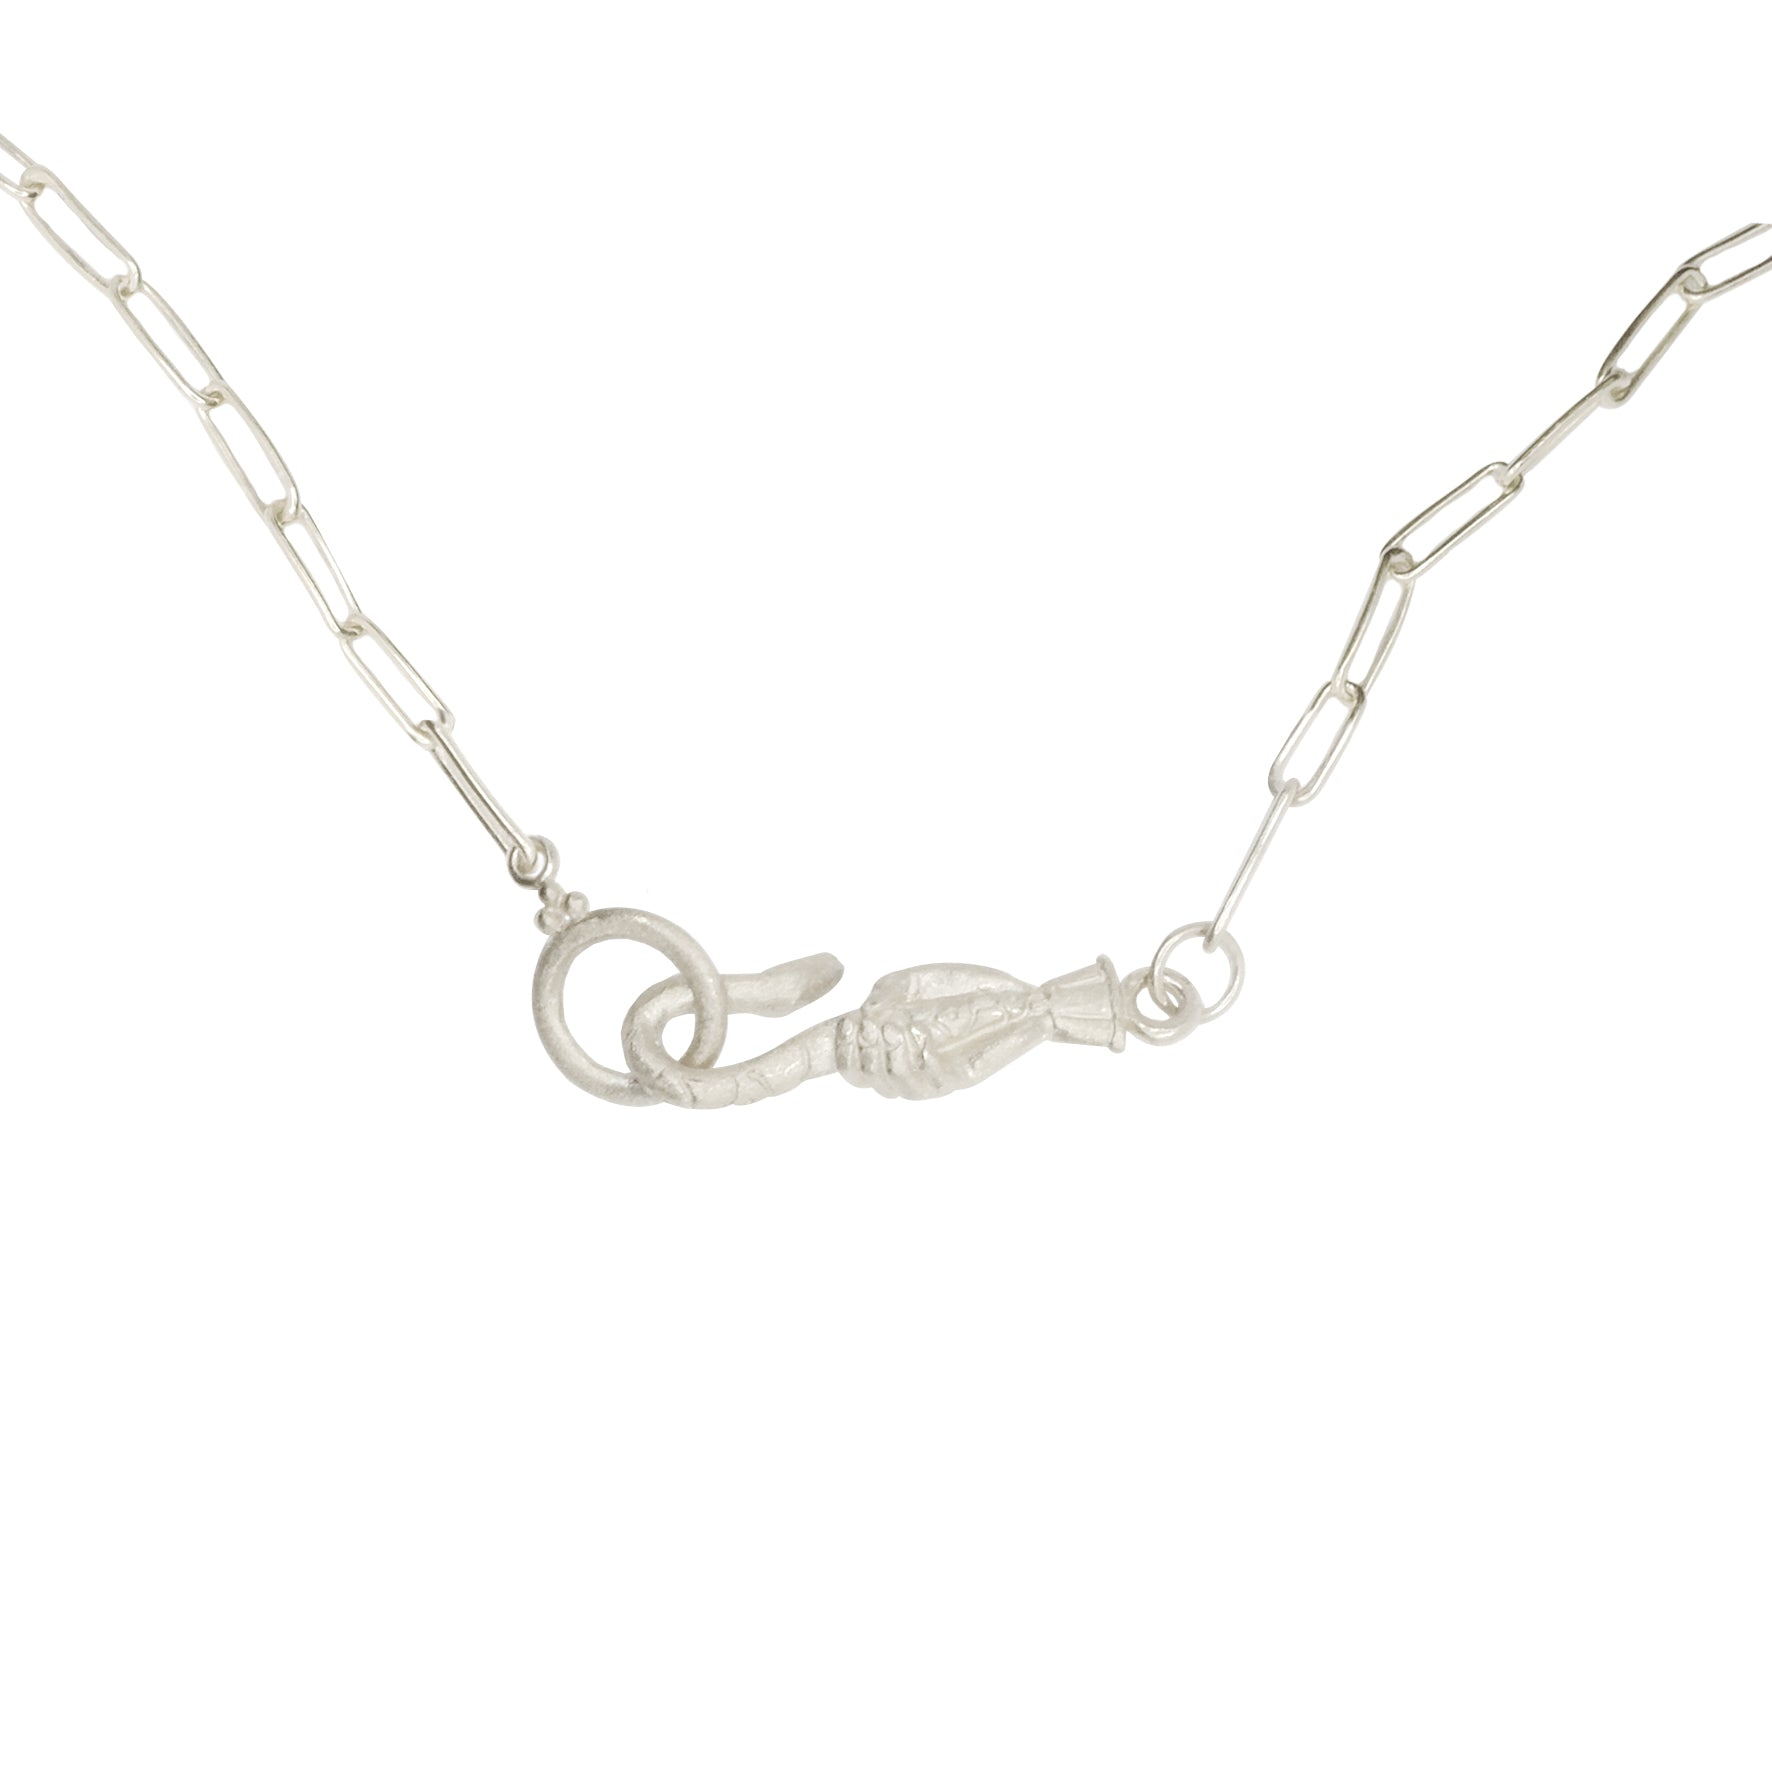 Serpent Hook Chain Necklace